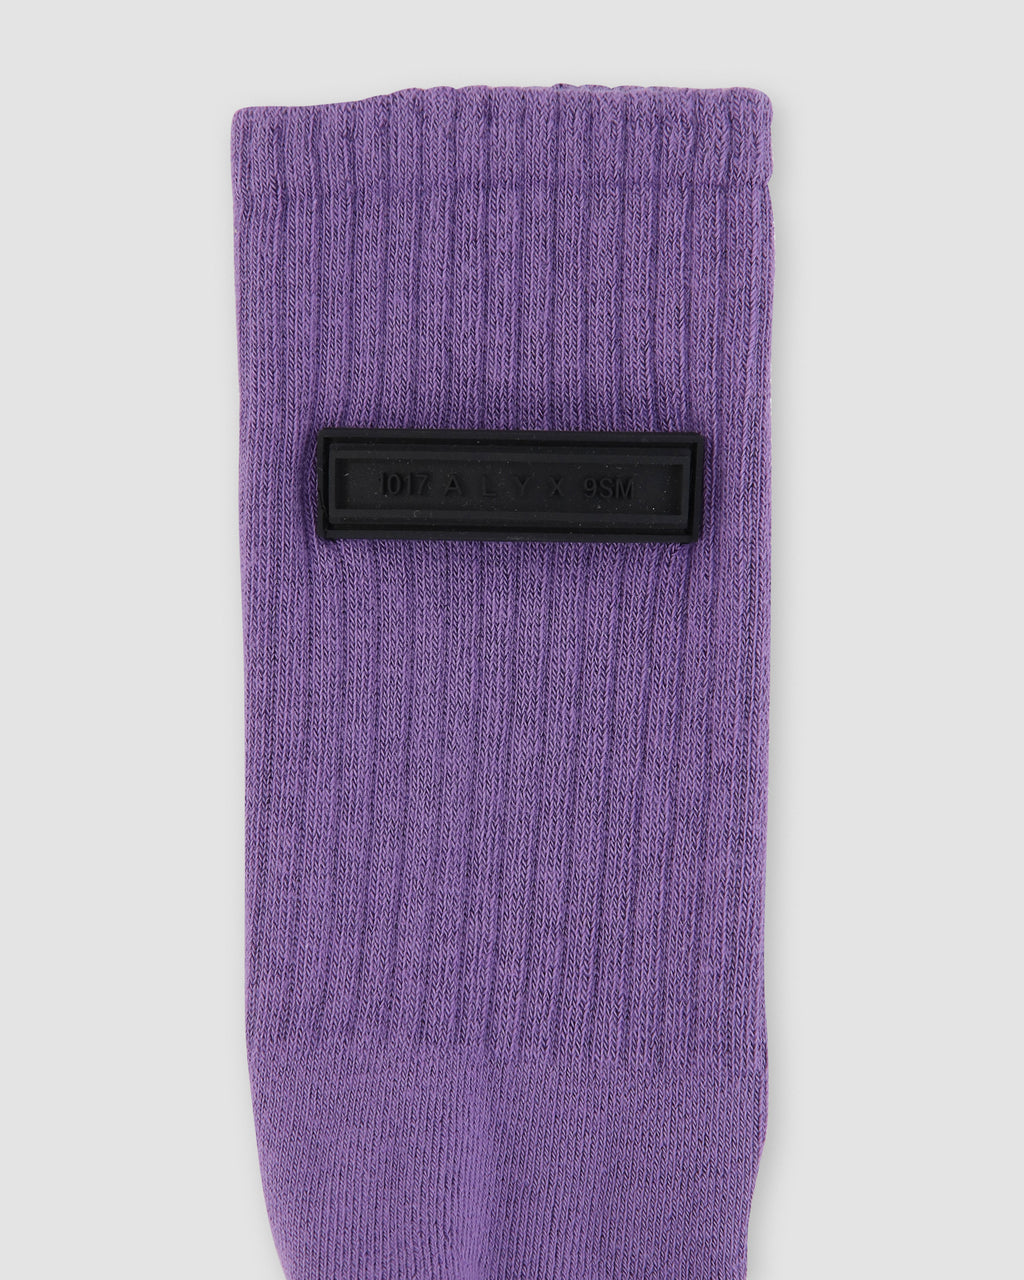 1017 ALYX 9SM | SPORT SOCKS | Sock | Accessories, Google Shopping, Man, PURPLE, S20, Socks, SS20, UNISEX, Woman